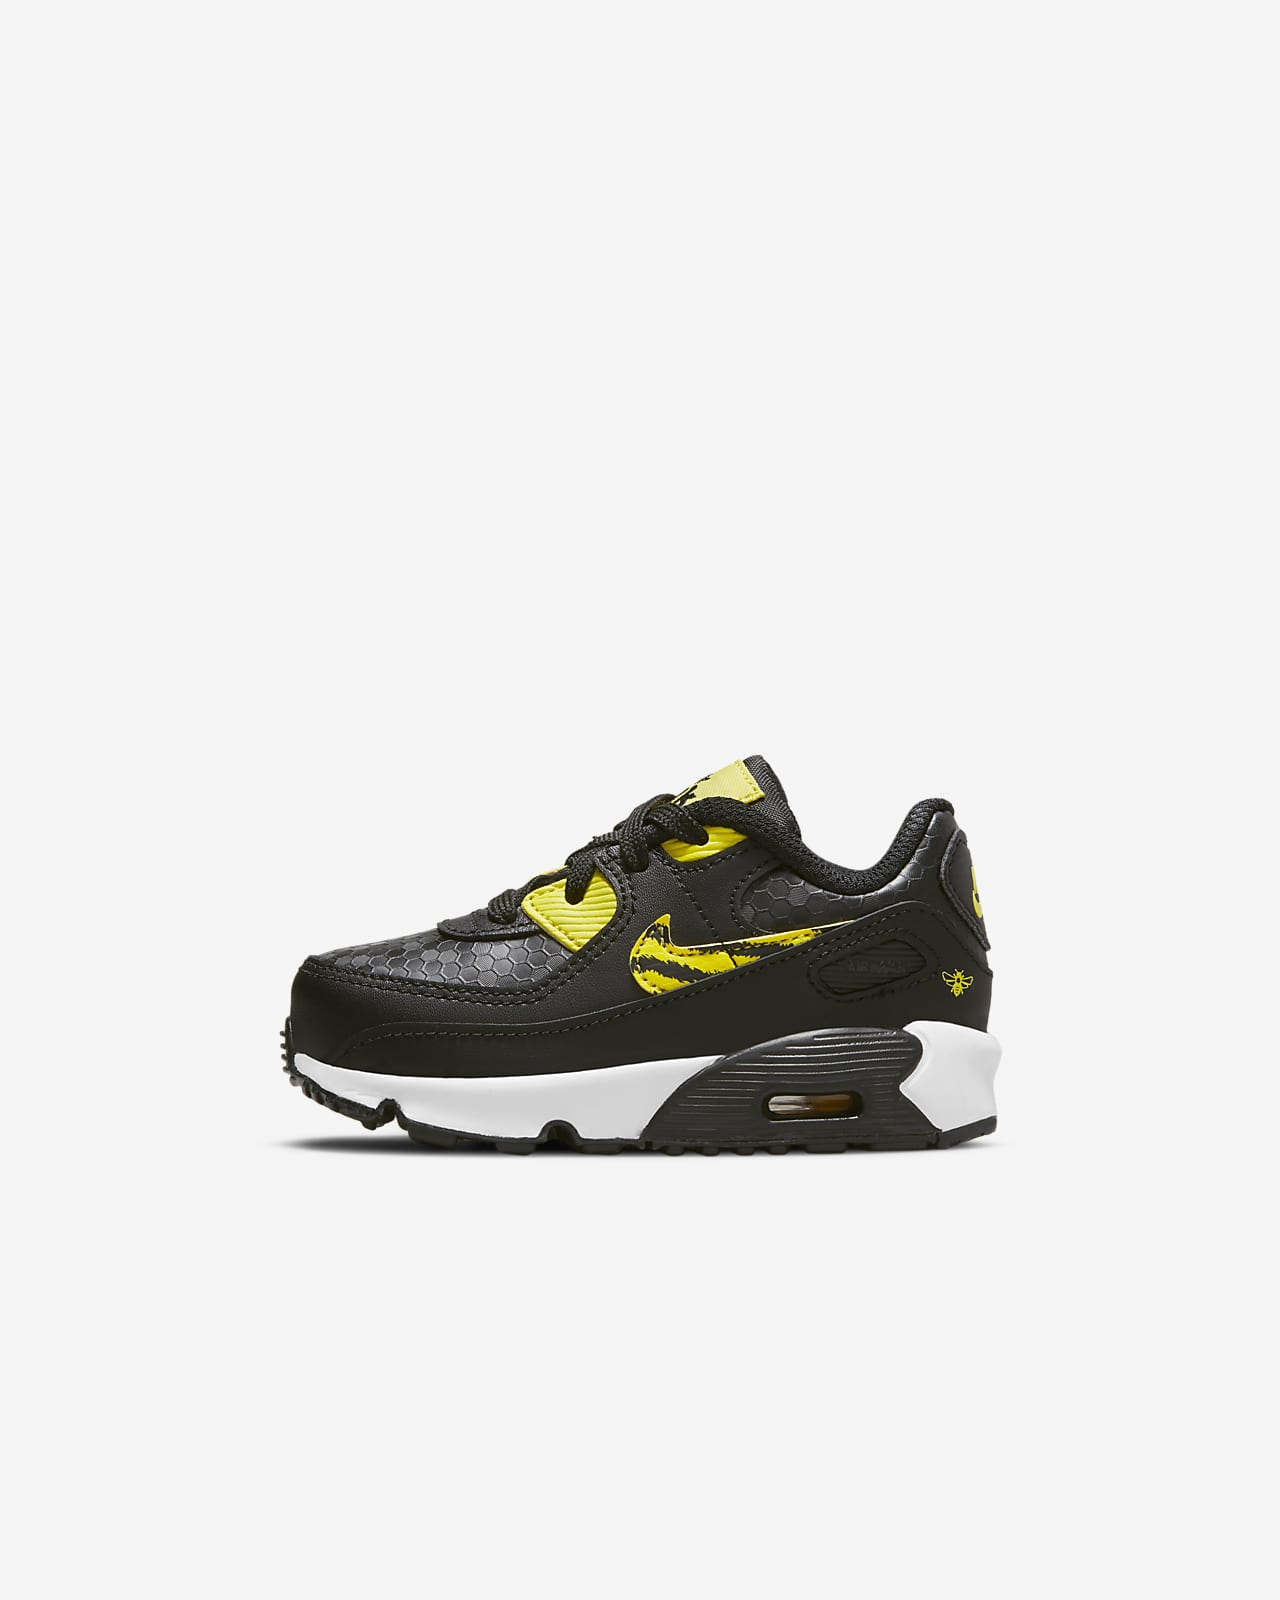 """Nike Air Max 90 SE """"Lil Bugs"""" 嬰幼兒鞋款"""